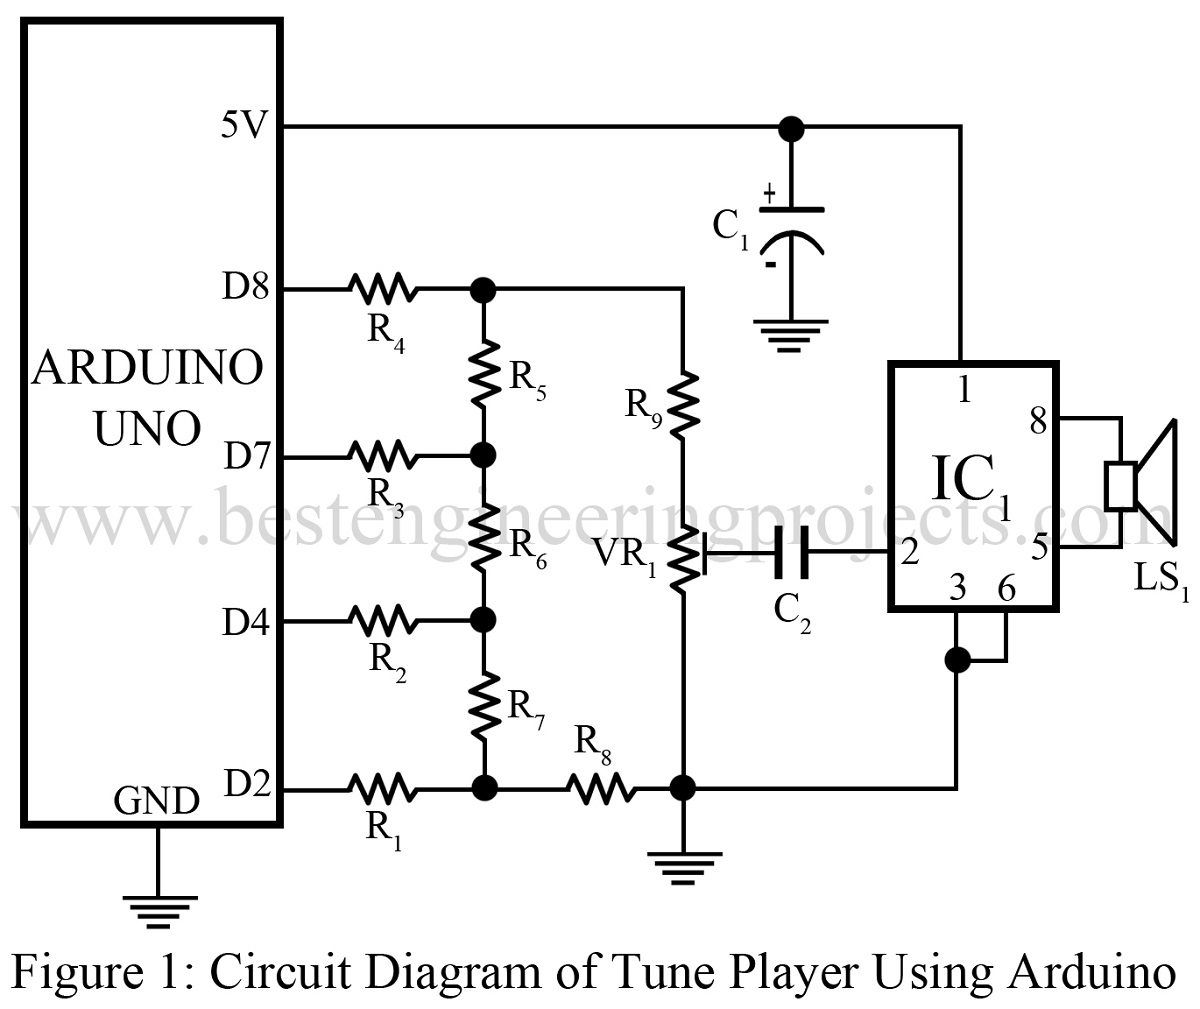 tune player using arduino